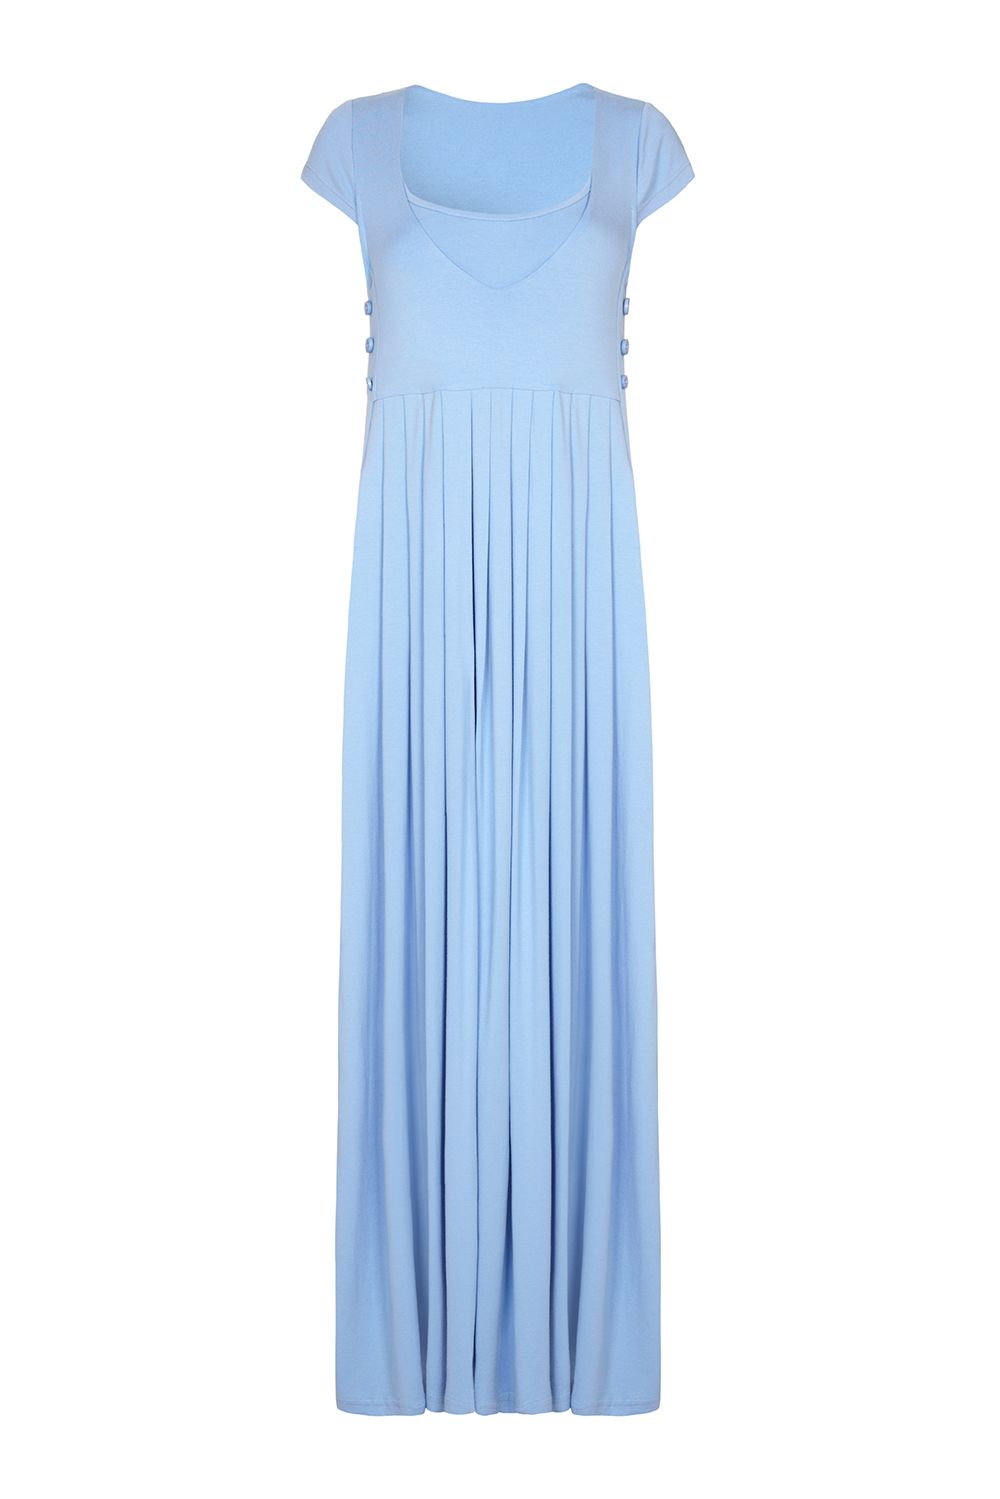 light blue maternity maxi dress